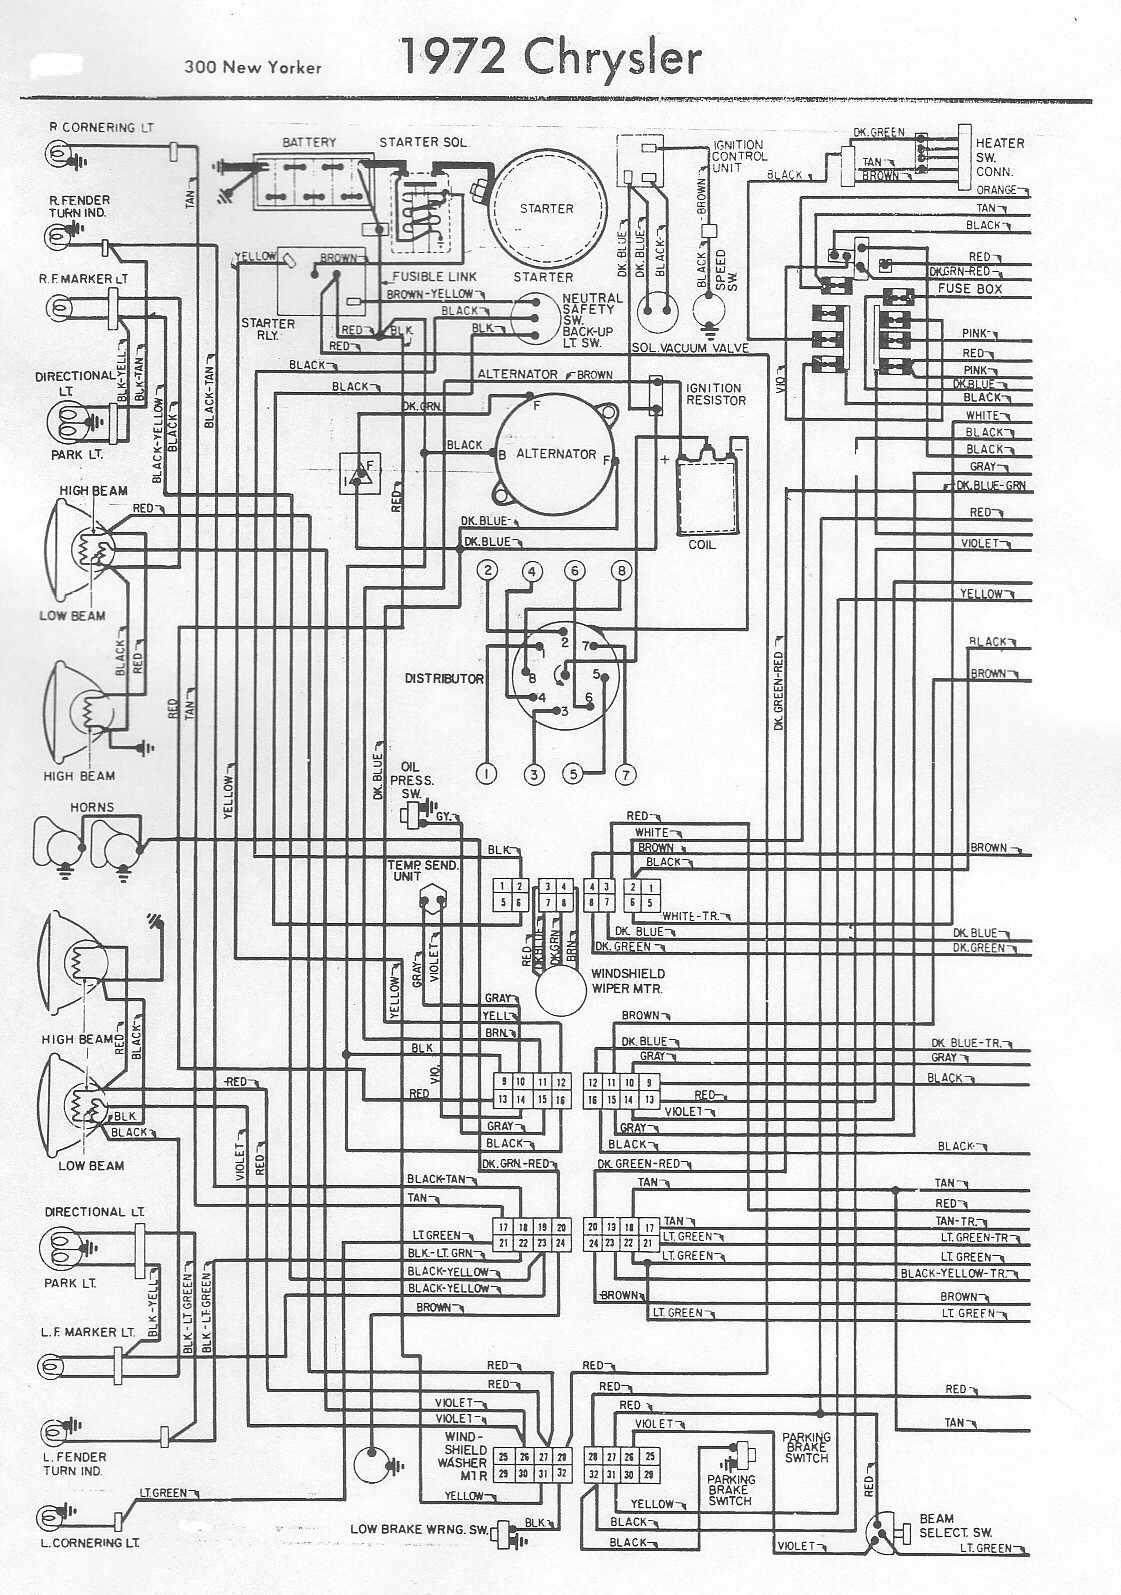 electrical wiring diagram of 1972 chrysler 300 new yorker?t=1508393590 chrysler car manuals, wiring diagrams pdf & fault codes chrysler 300m wiring diagram at readyjetset.co